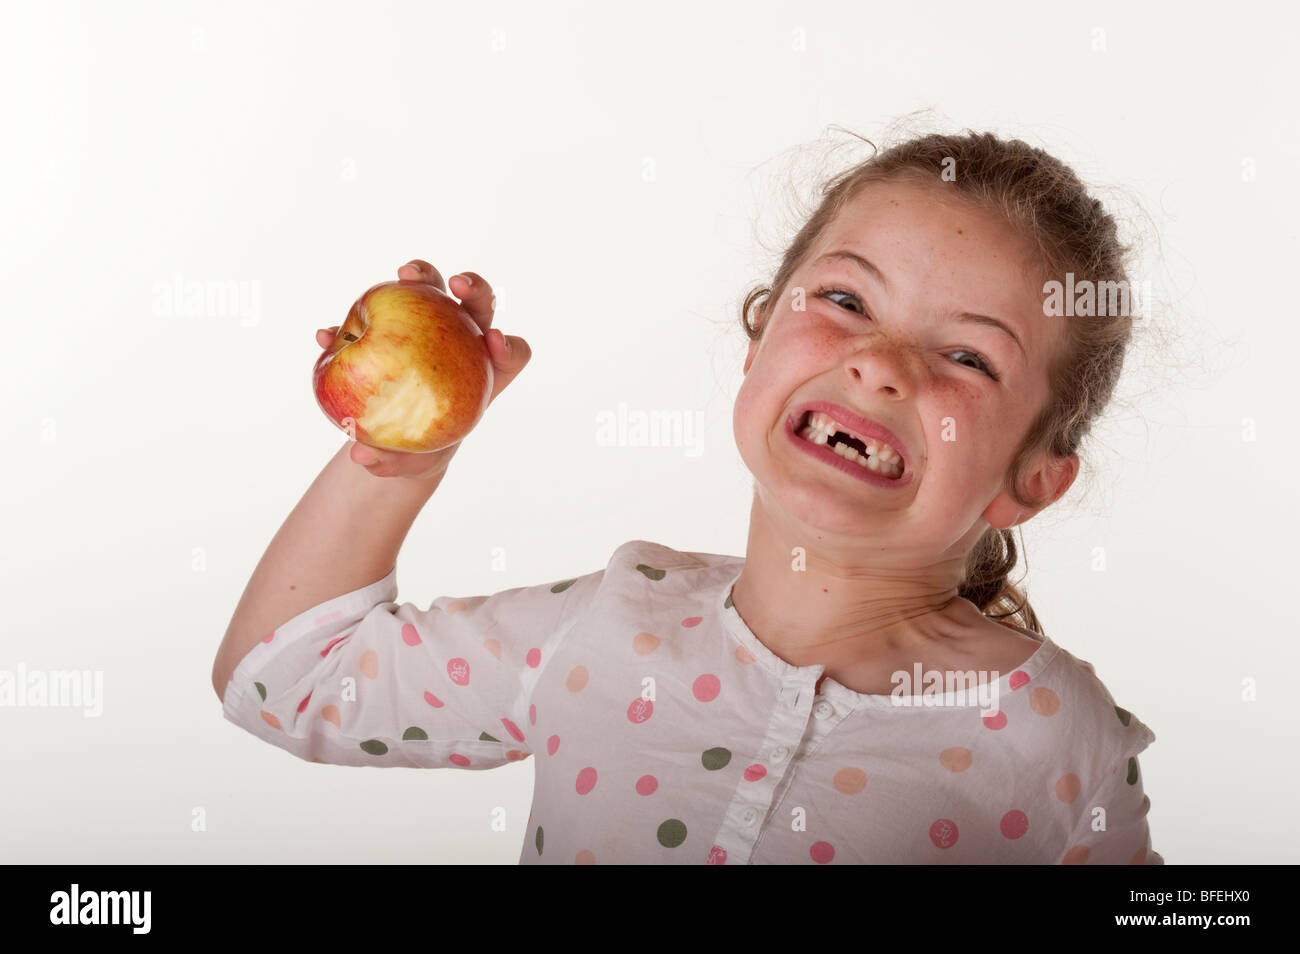 little girl (7 years old) who is missing front teeth eating apple on red bean bag chair against - Stock Image